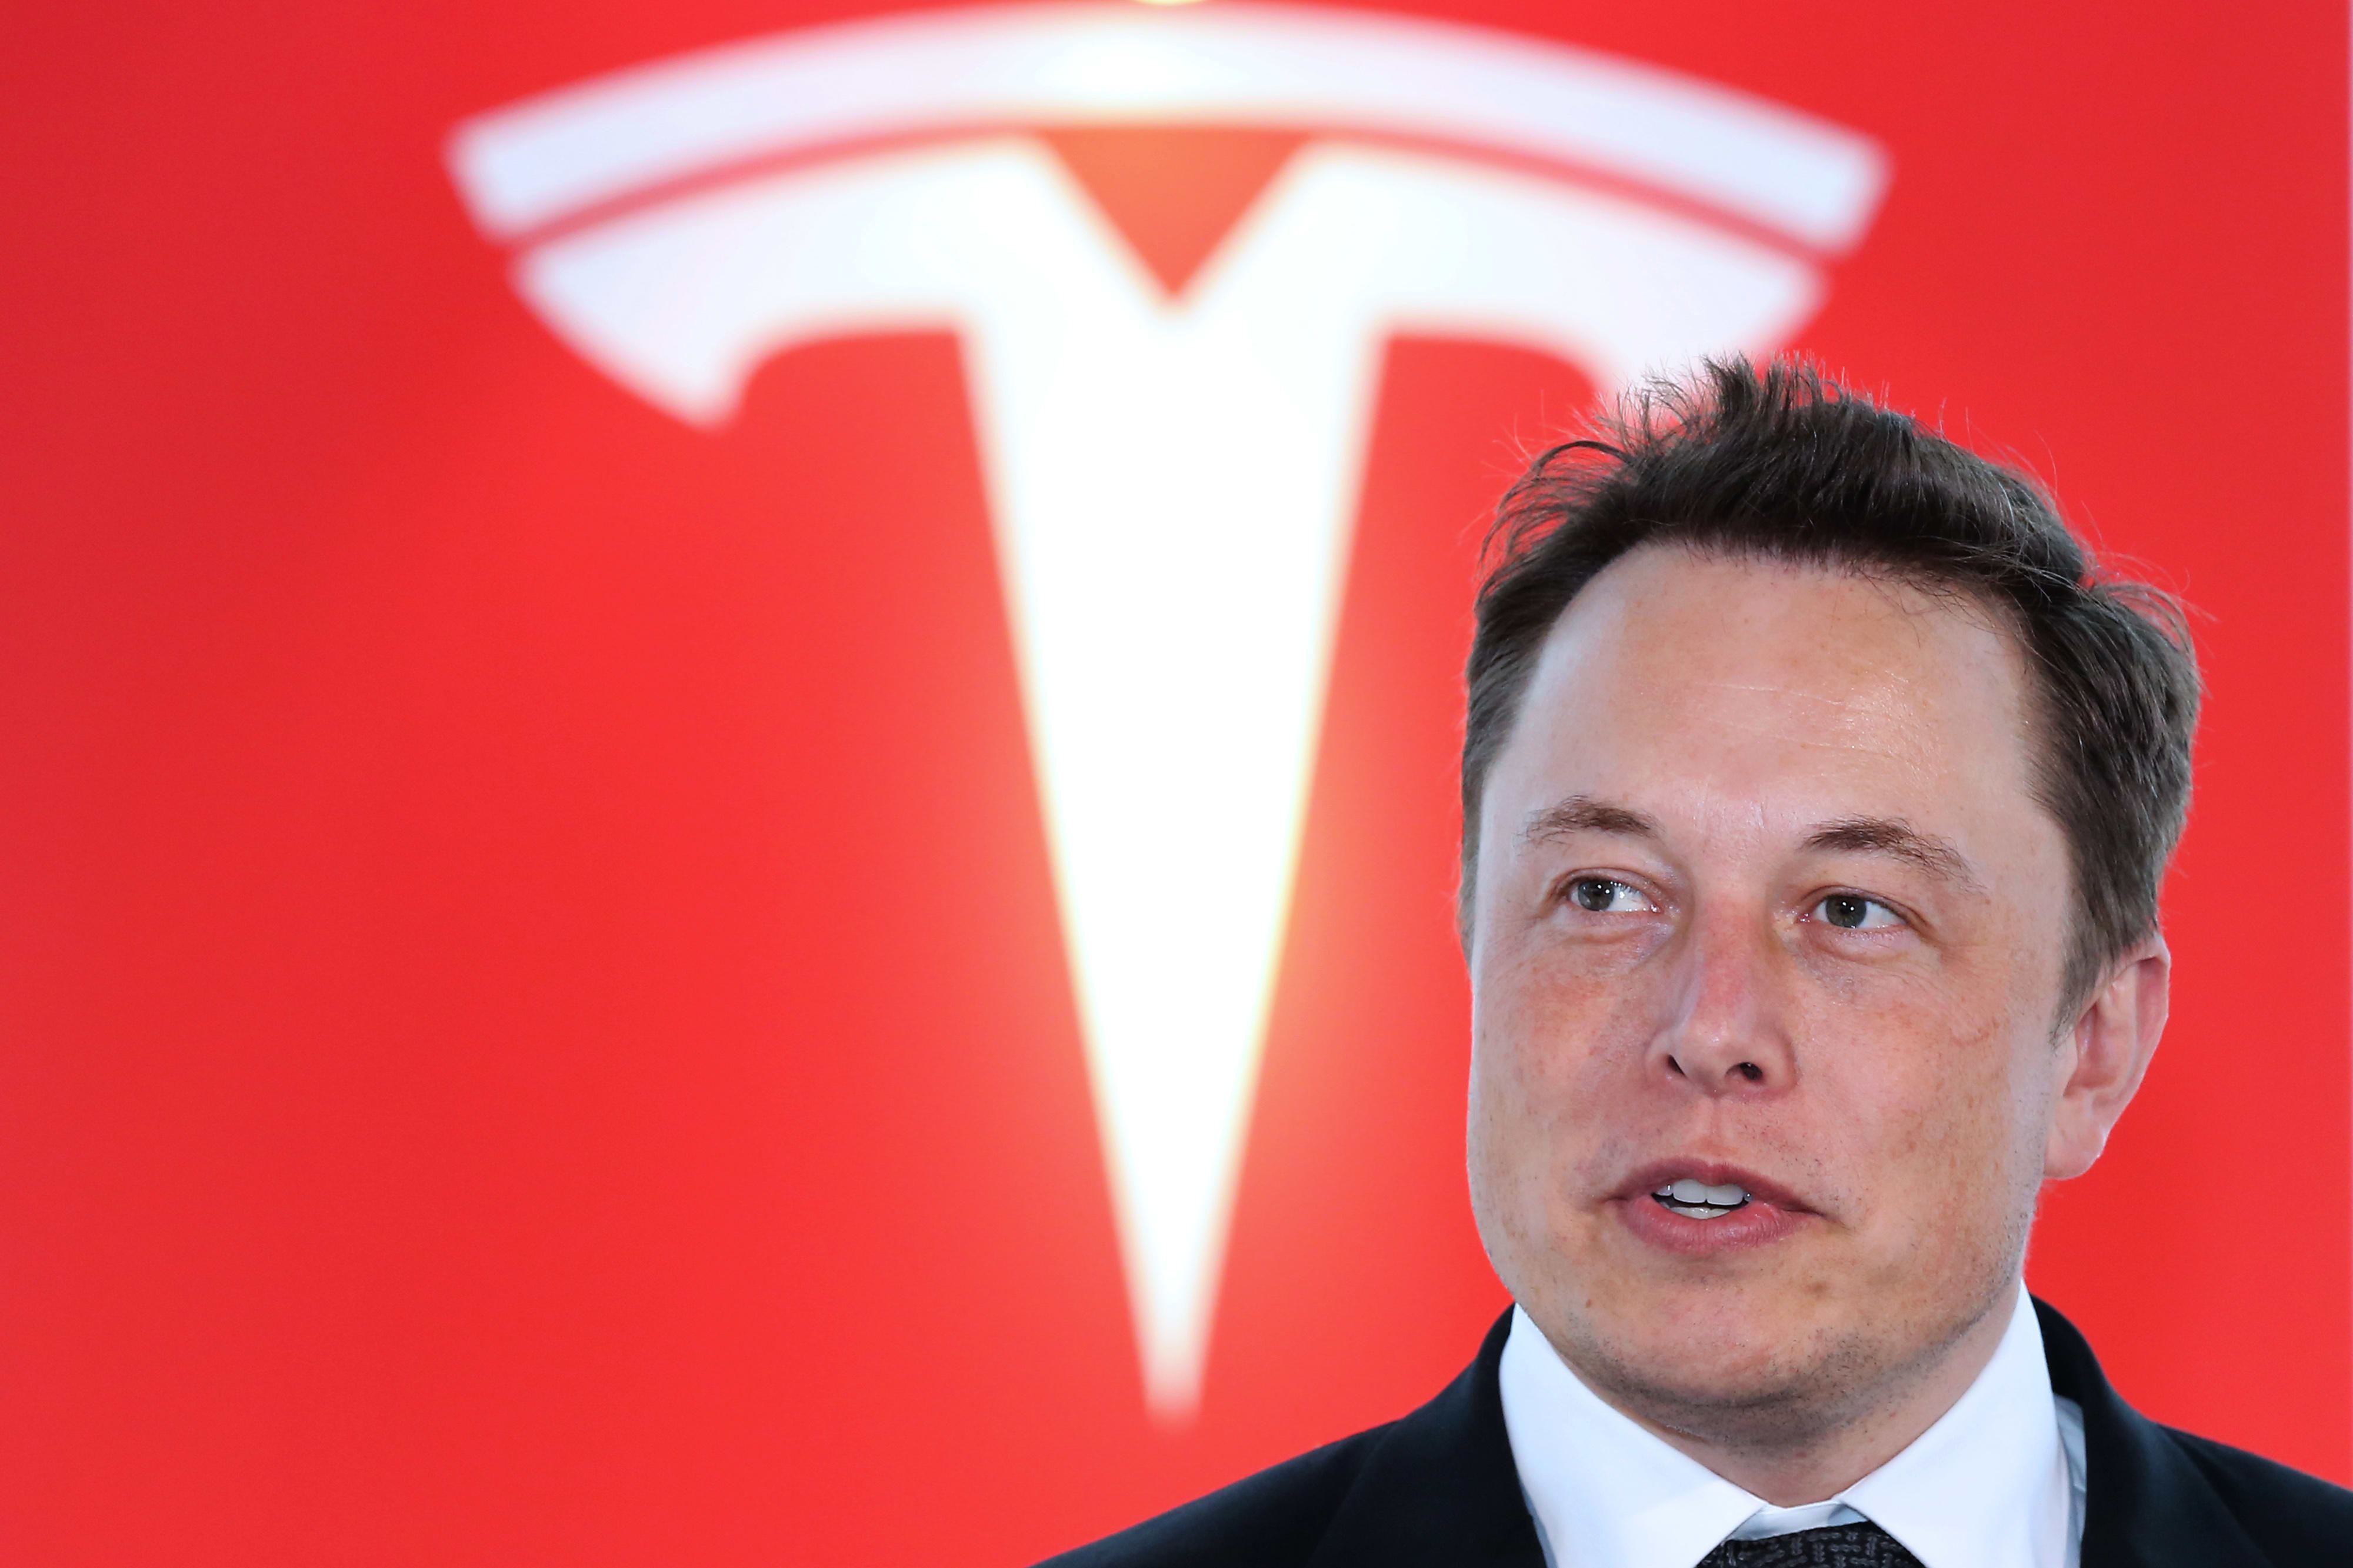 Tesla has run 40% in a month, and chart points to another double-digit rally ahead